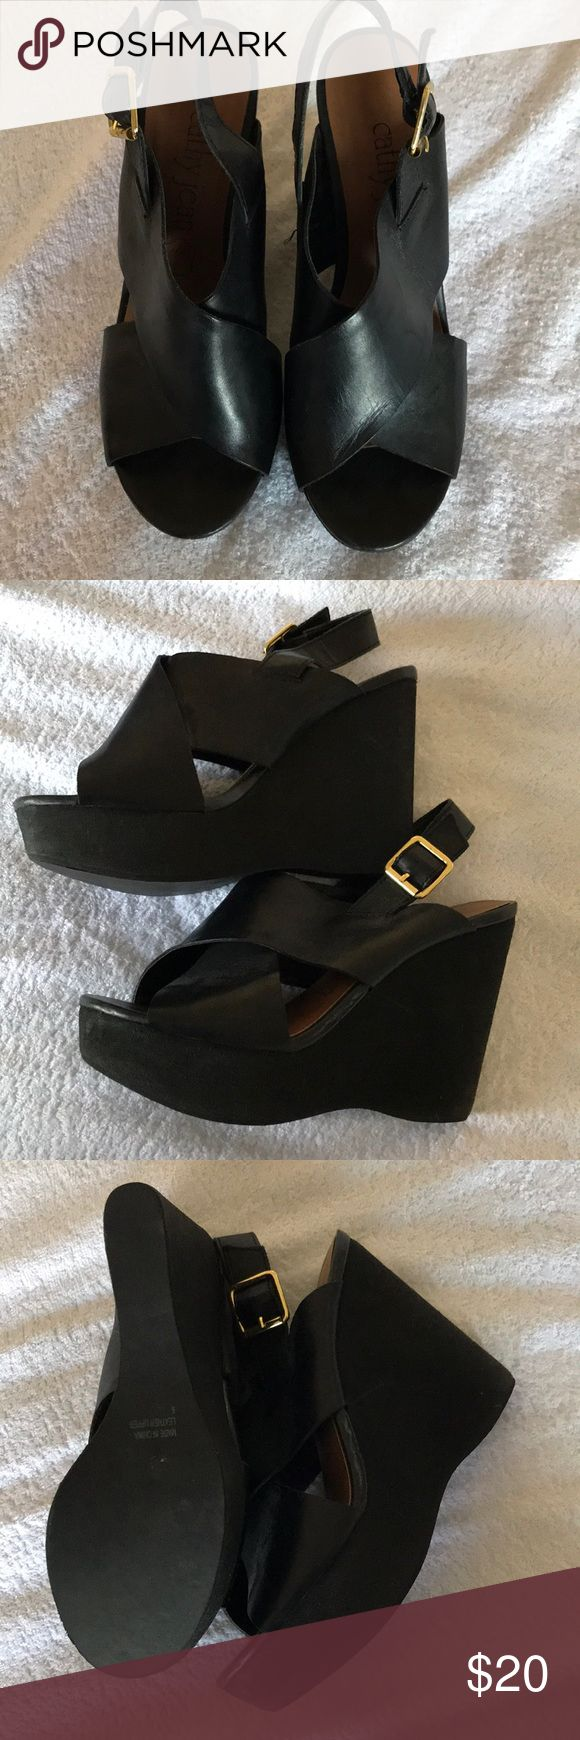 Black wedge Sandals Great condition. Only wore like 3 times. Very comfortable Cathy Jean Shoes Sandals